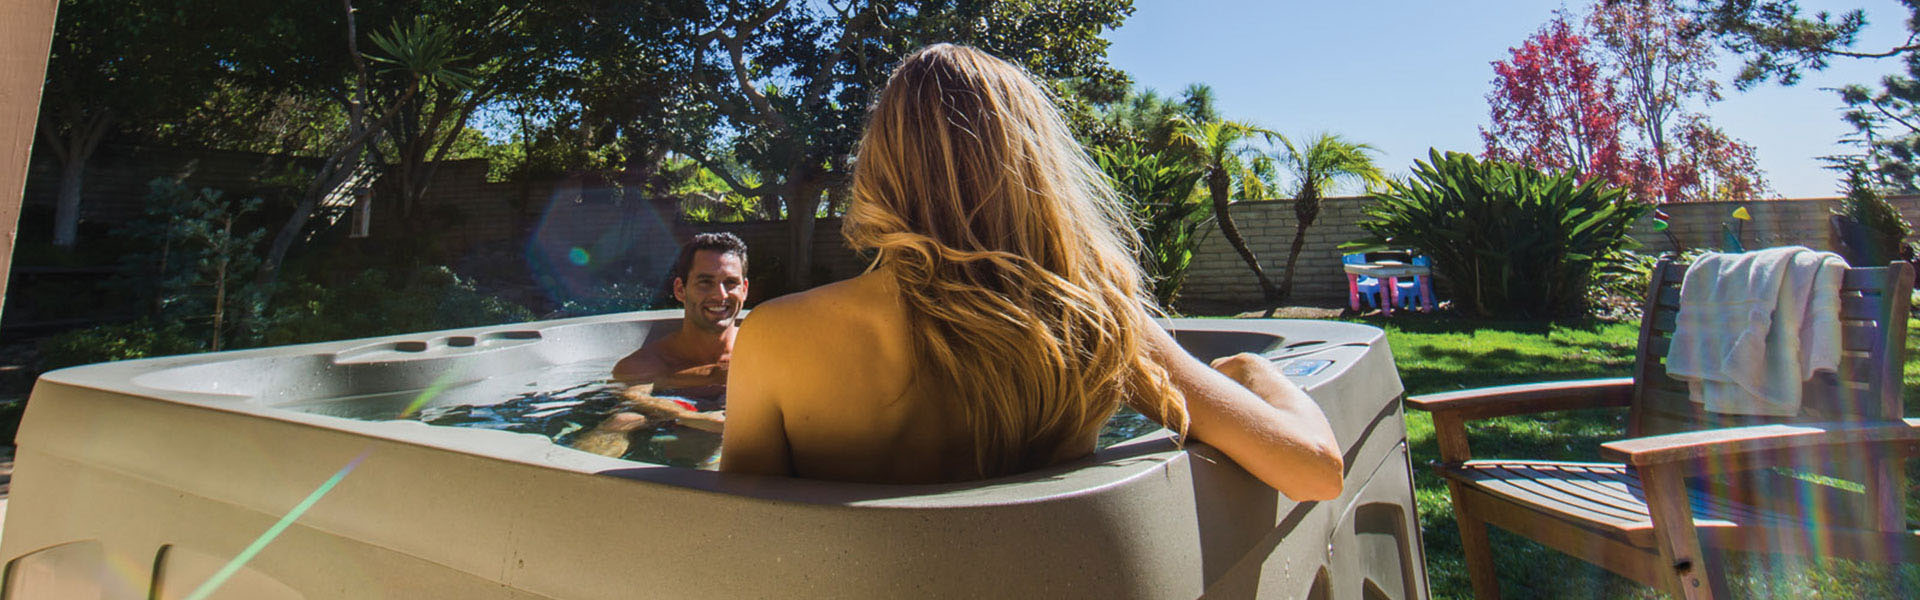 3 Tips to Boost Mood Naturally by Soaking in a Backyard Spa, 110 Volt Hot Tubs Clive